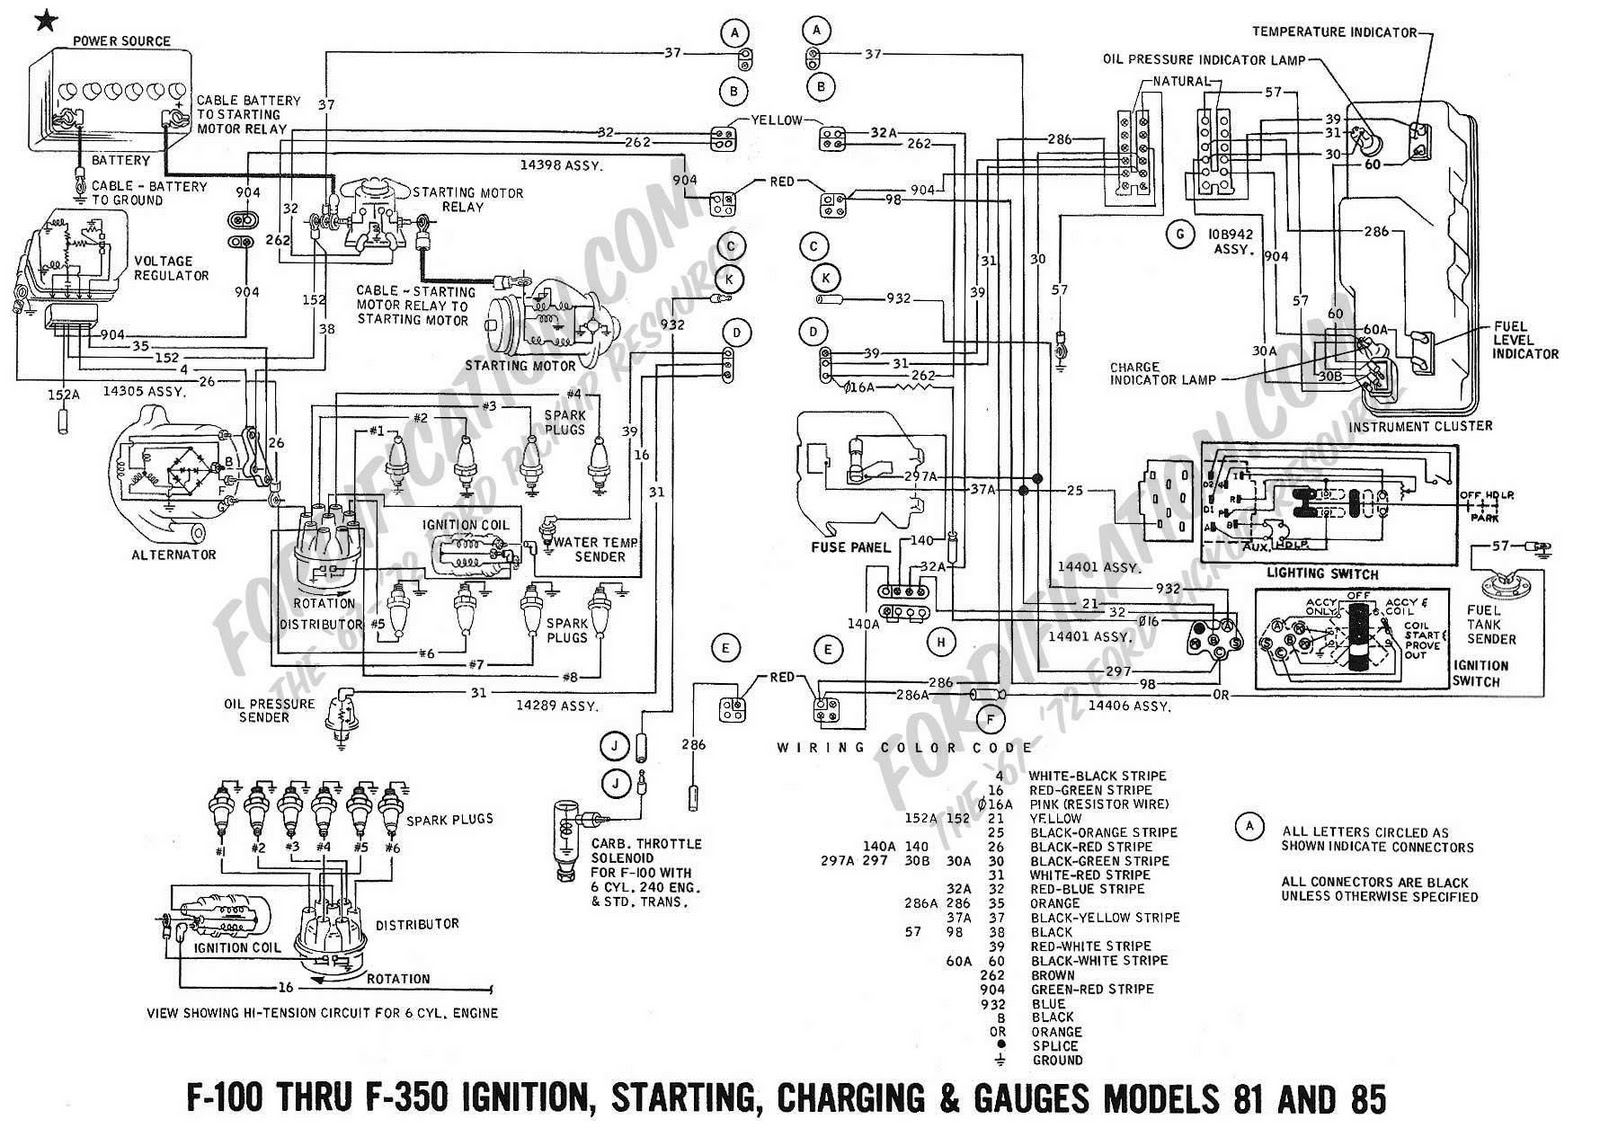 1968 Ford F100 Wiring Diagram Color Diagrams Box 1967 Corvette Dash Schematic Alternator 1966 Pu Pontiac Catalina